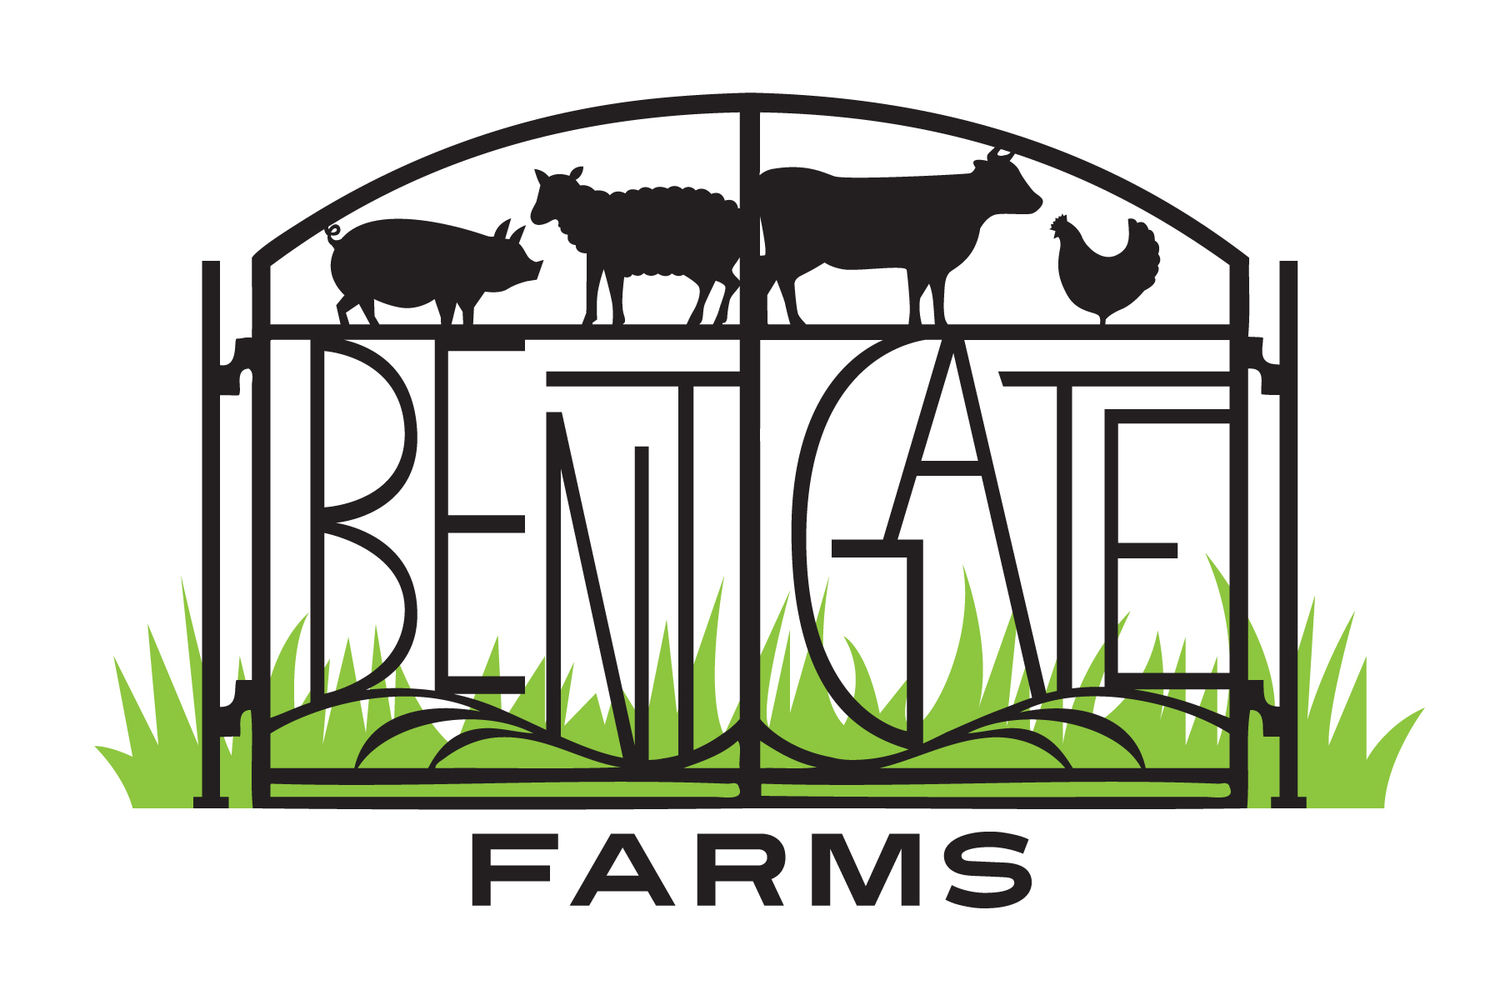 Bent Gate Farm